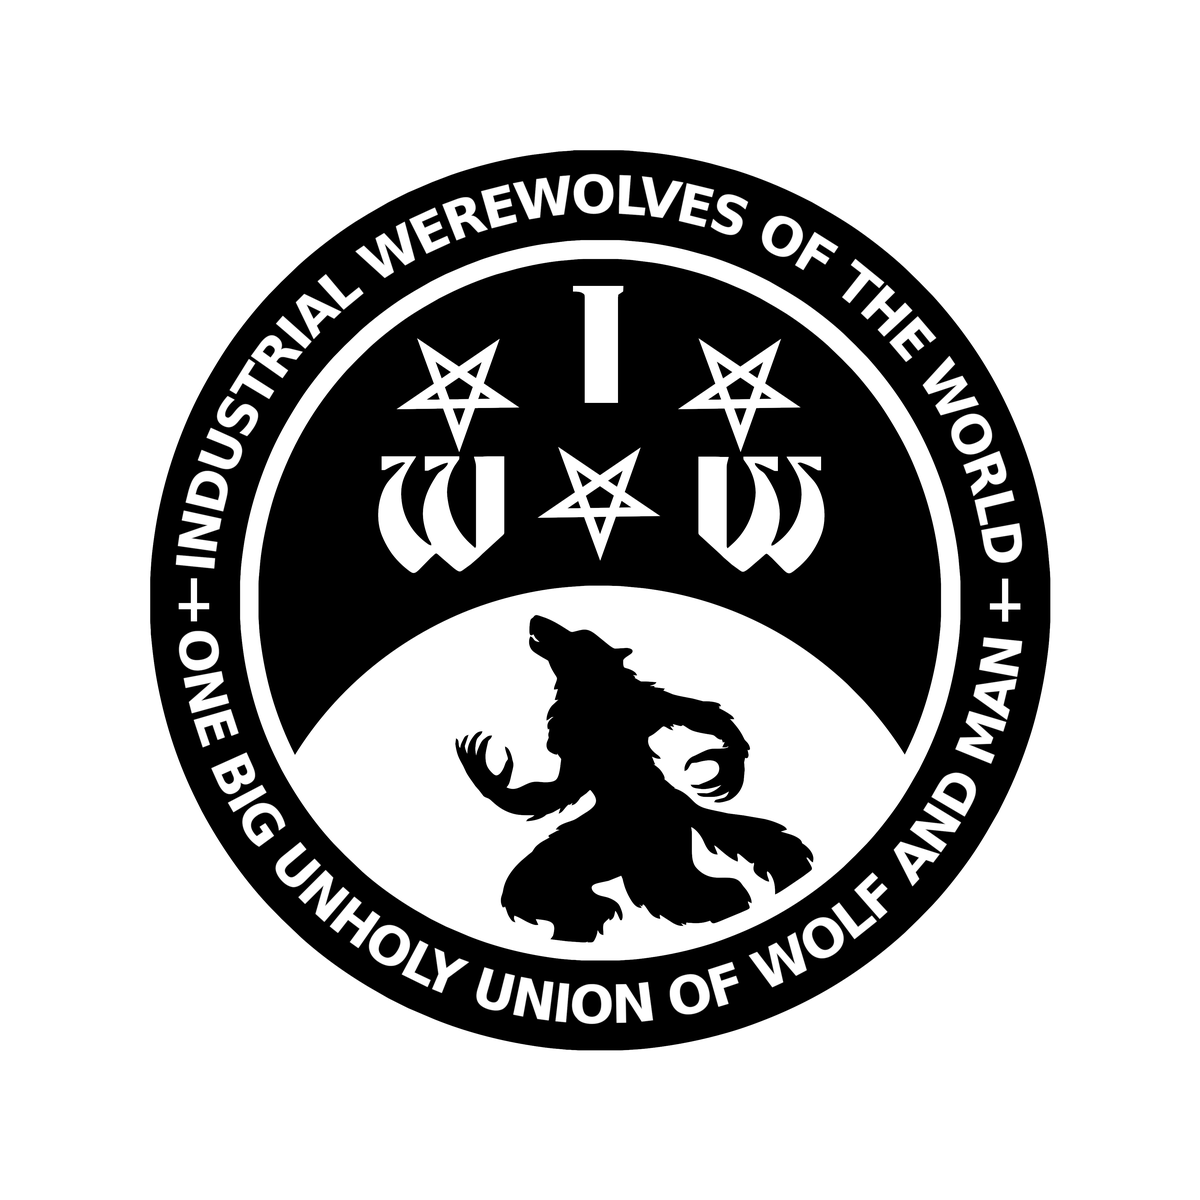 Image of Industrial Werewolves of the World - Vinyl Sticker